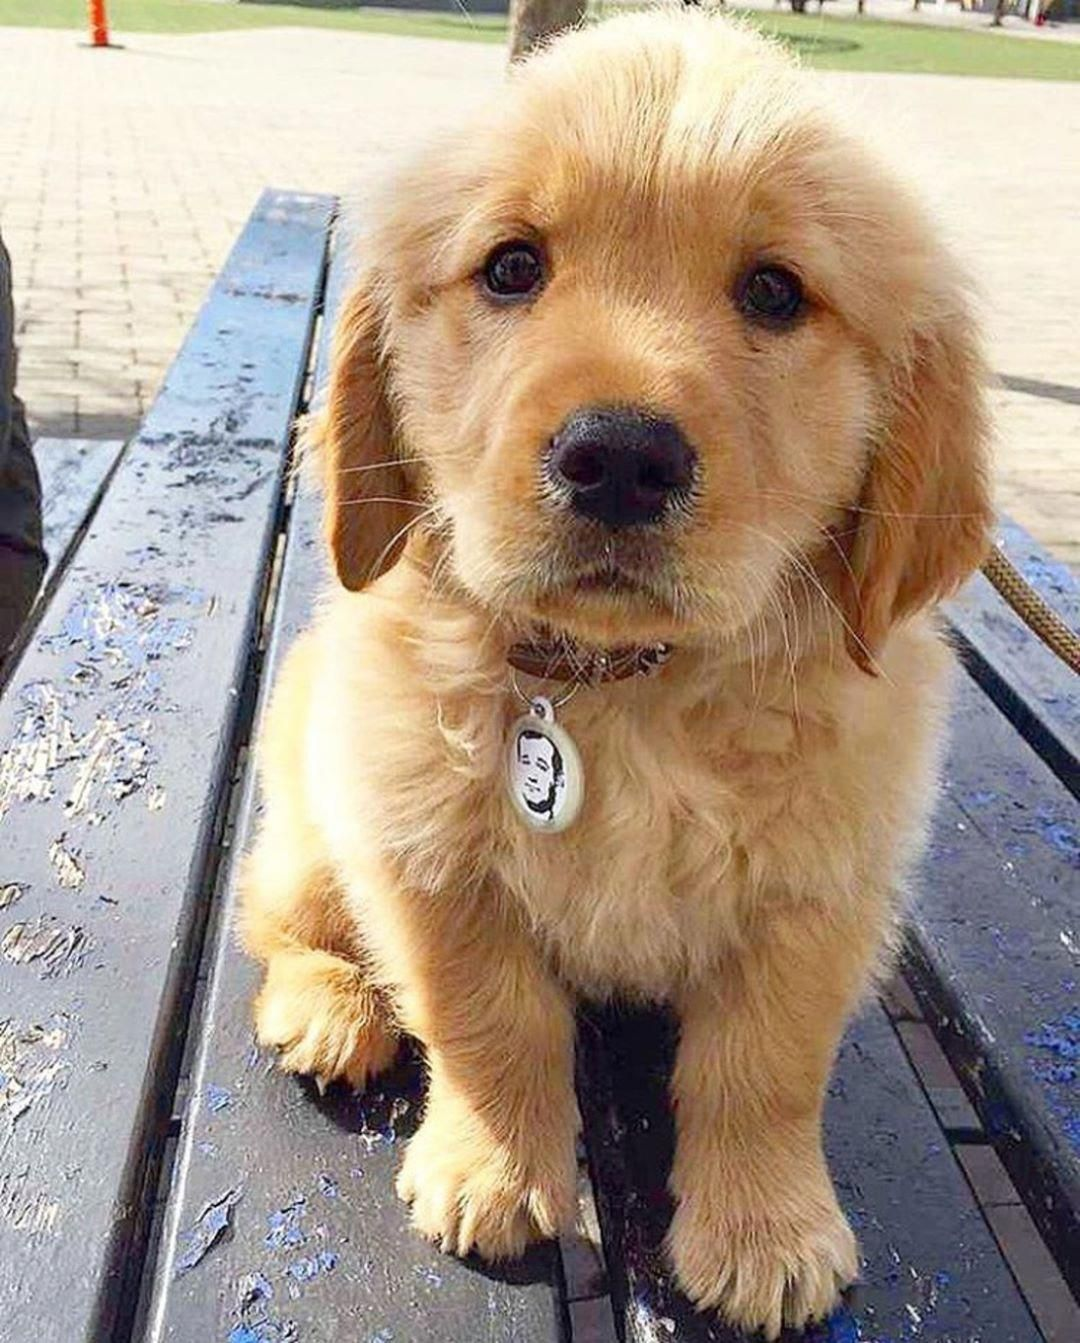 Puppies Image By Mee Seong Im On Animals Golden Retriever Dogs